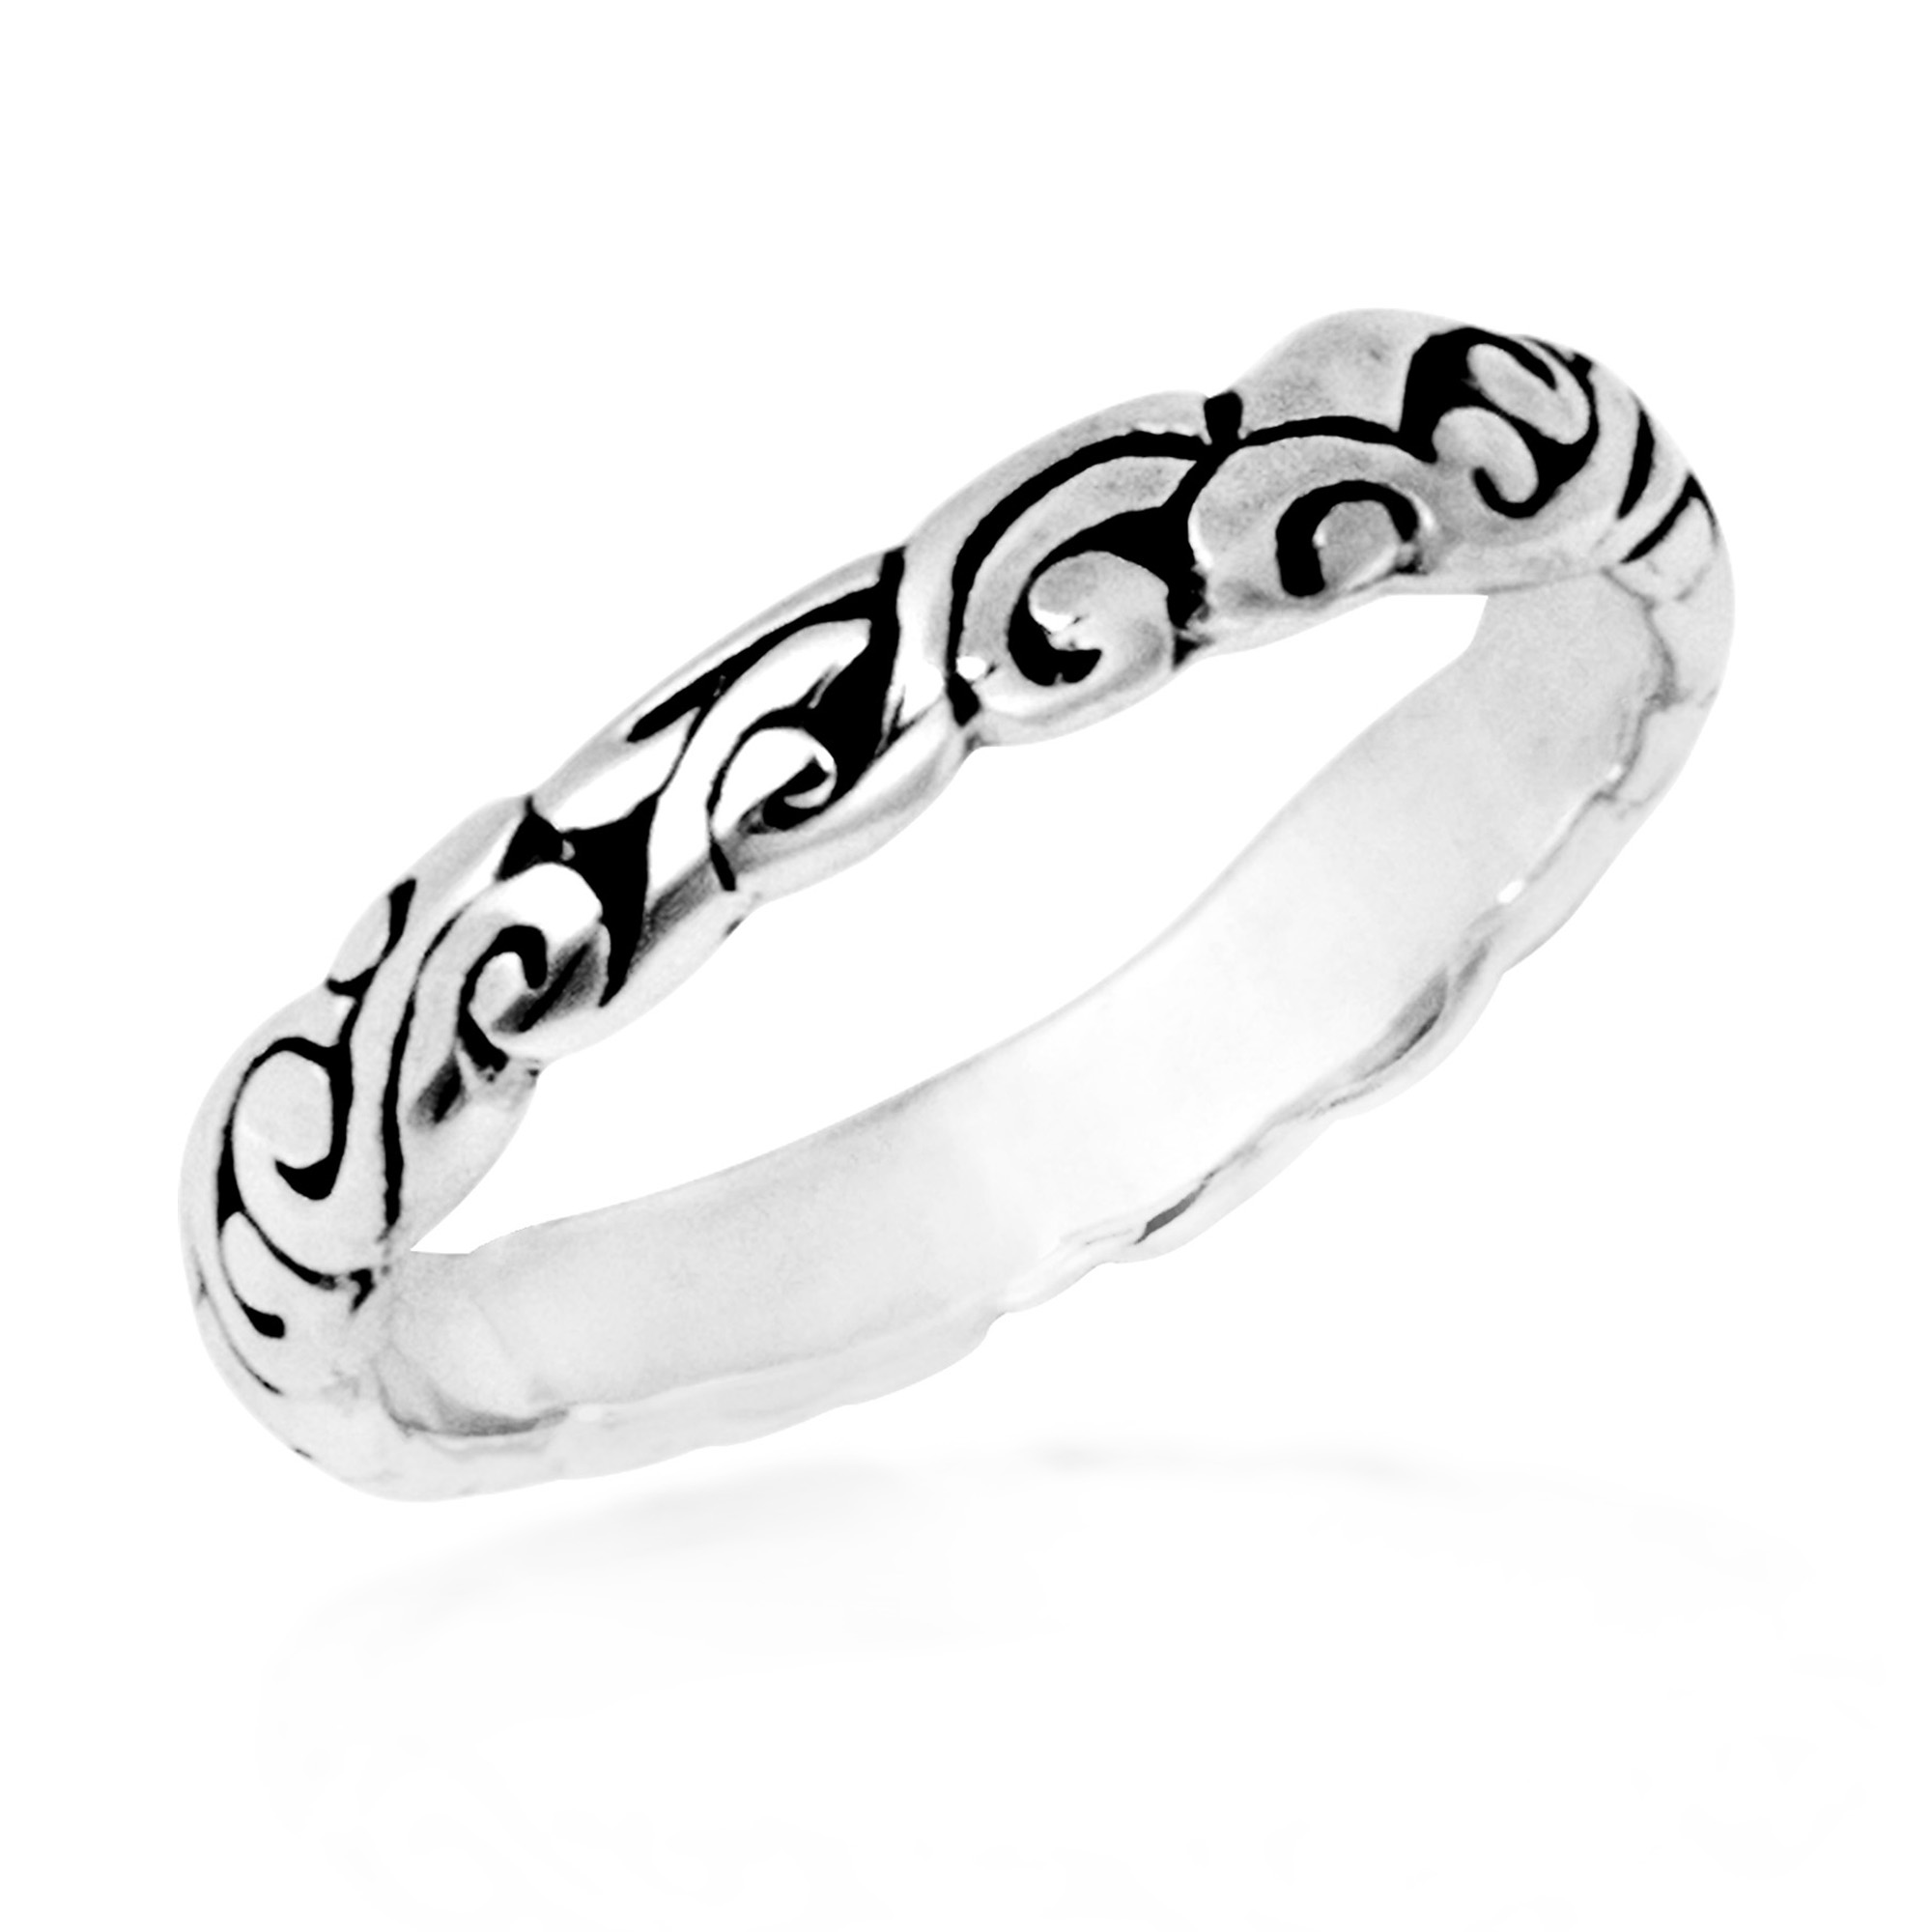 band pin balinese sterling novica bands filigree silver wide ring moonlight rivers